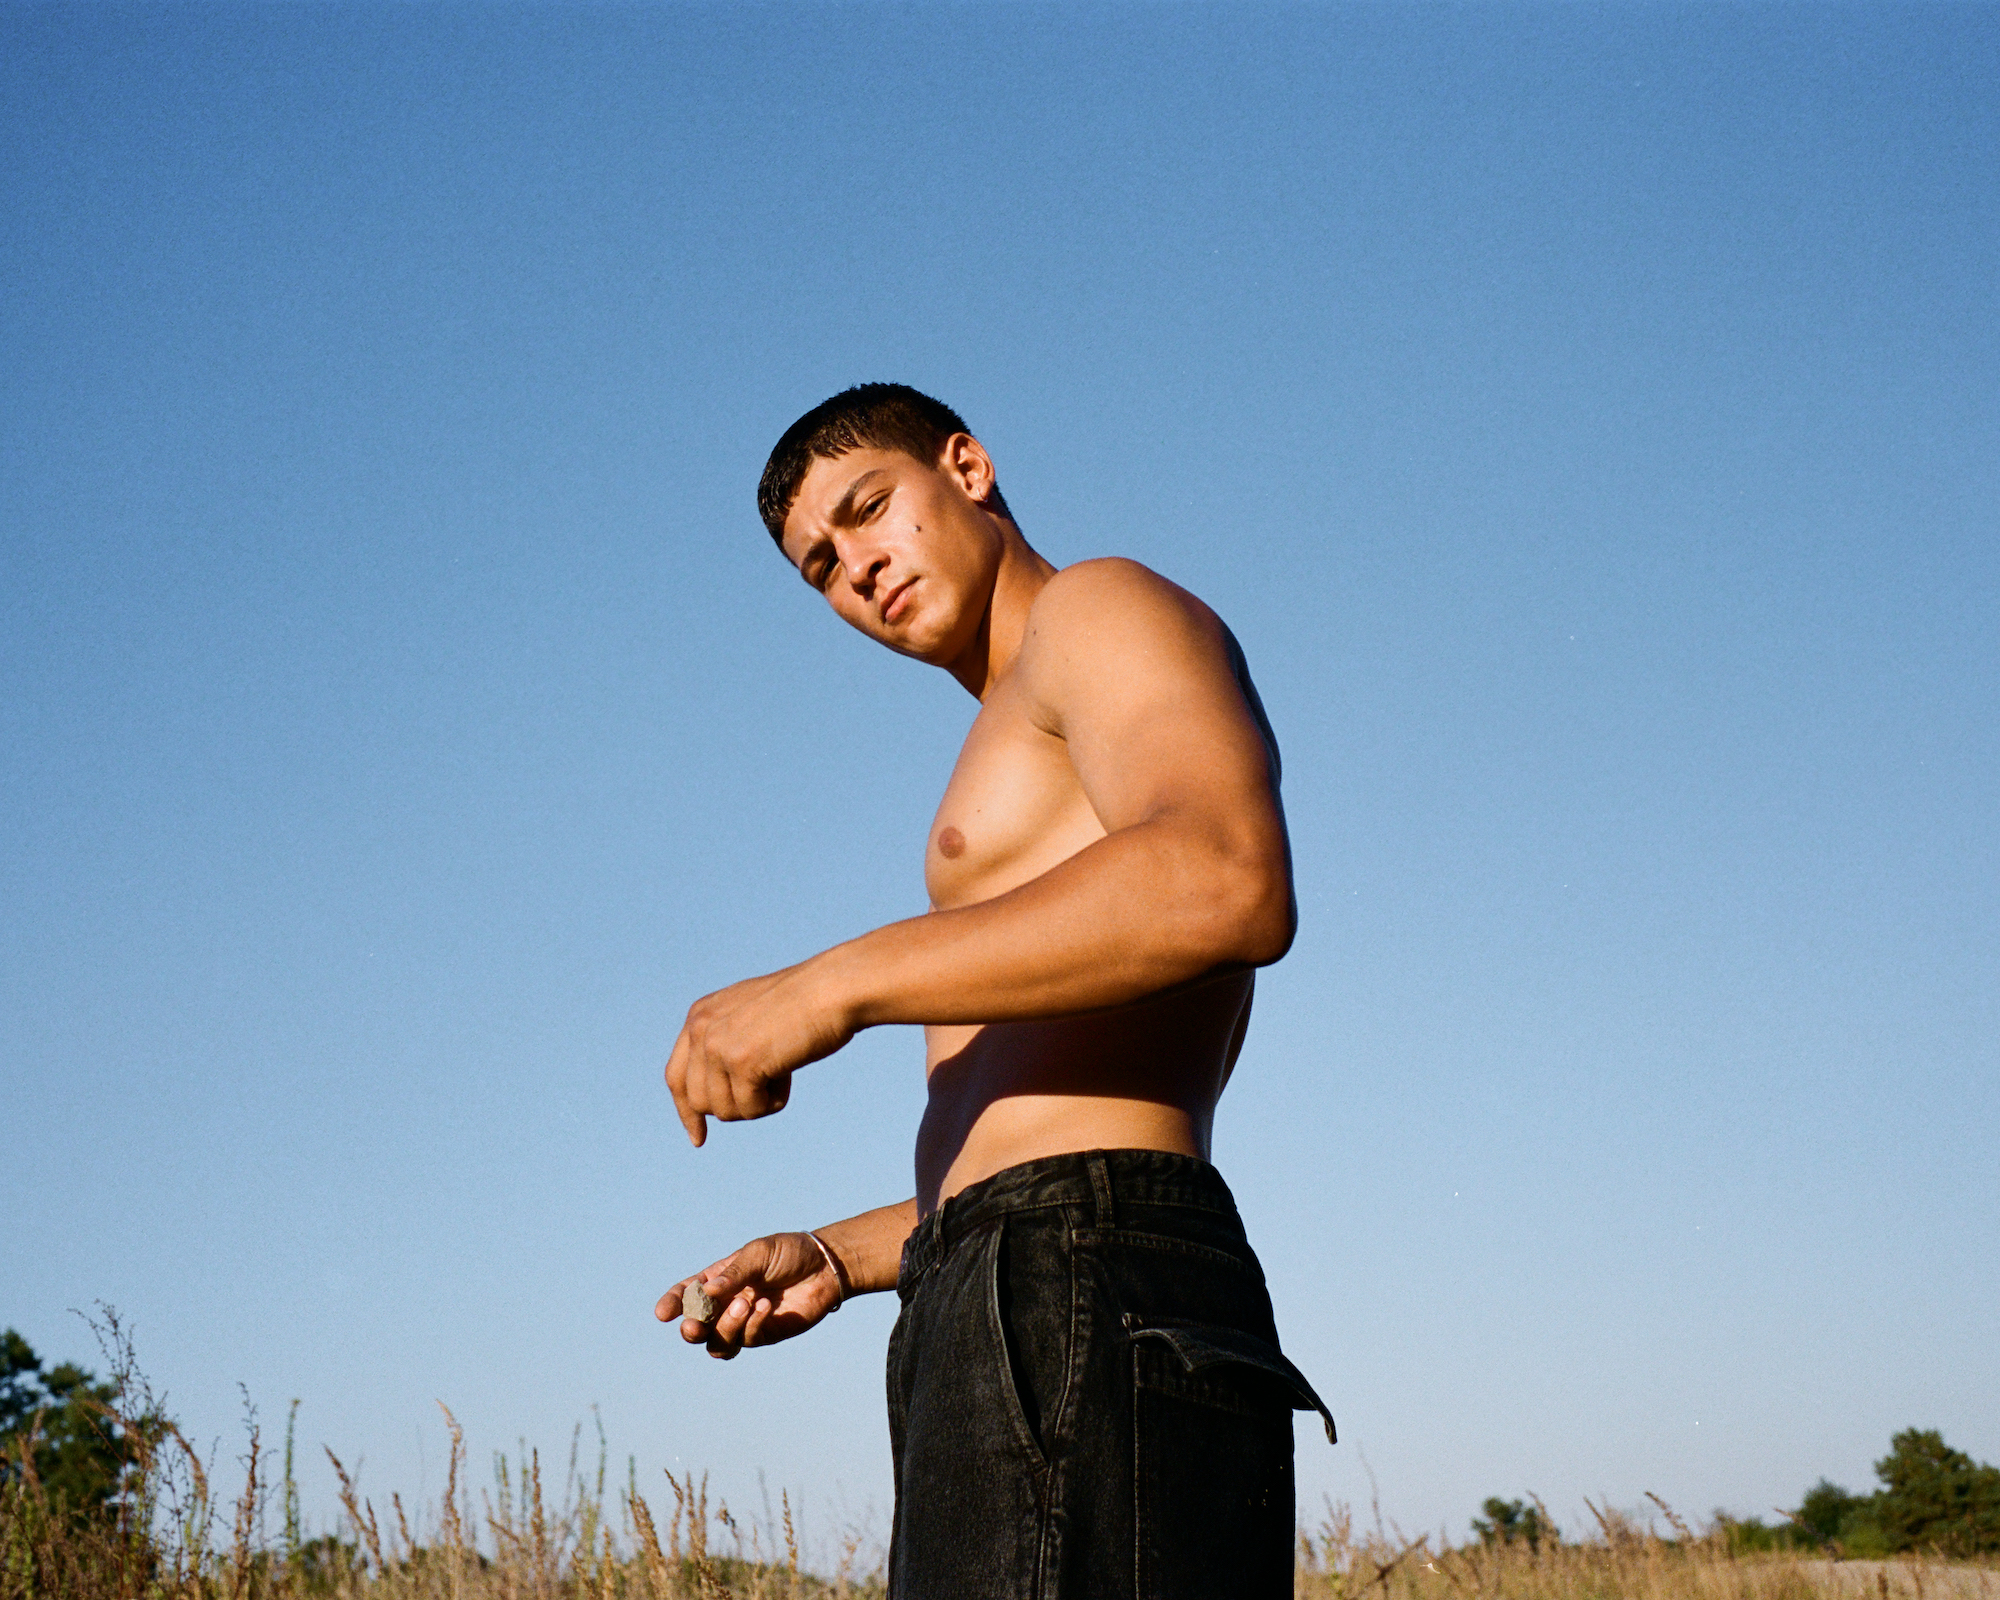 Emilio Sakraya wearings shirtless standing in field